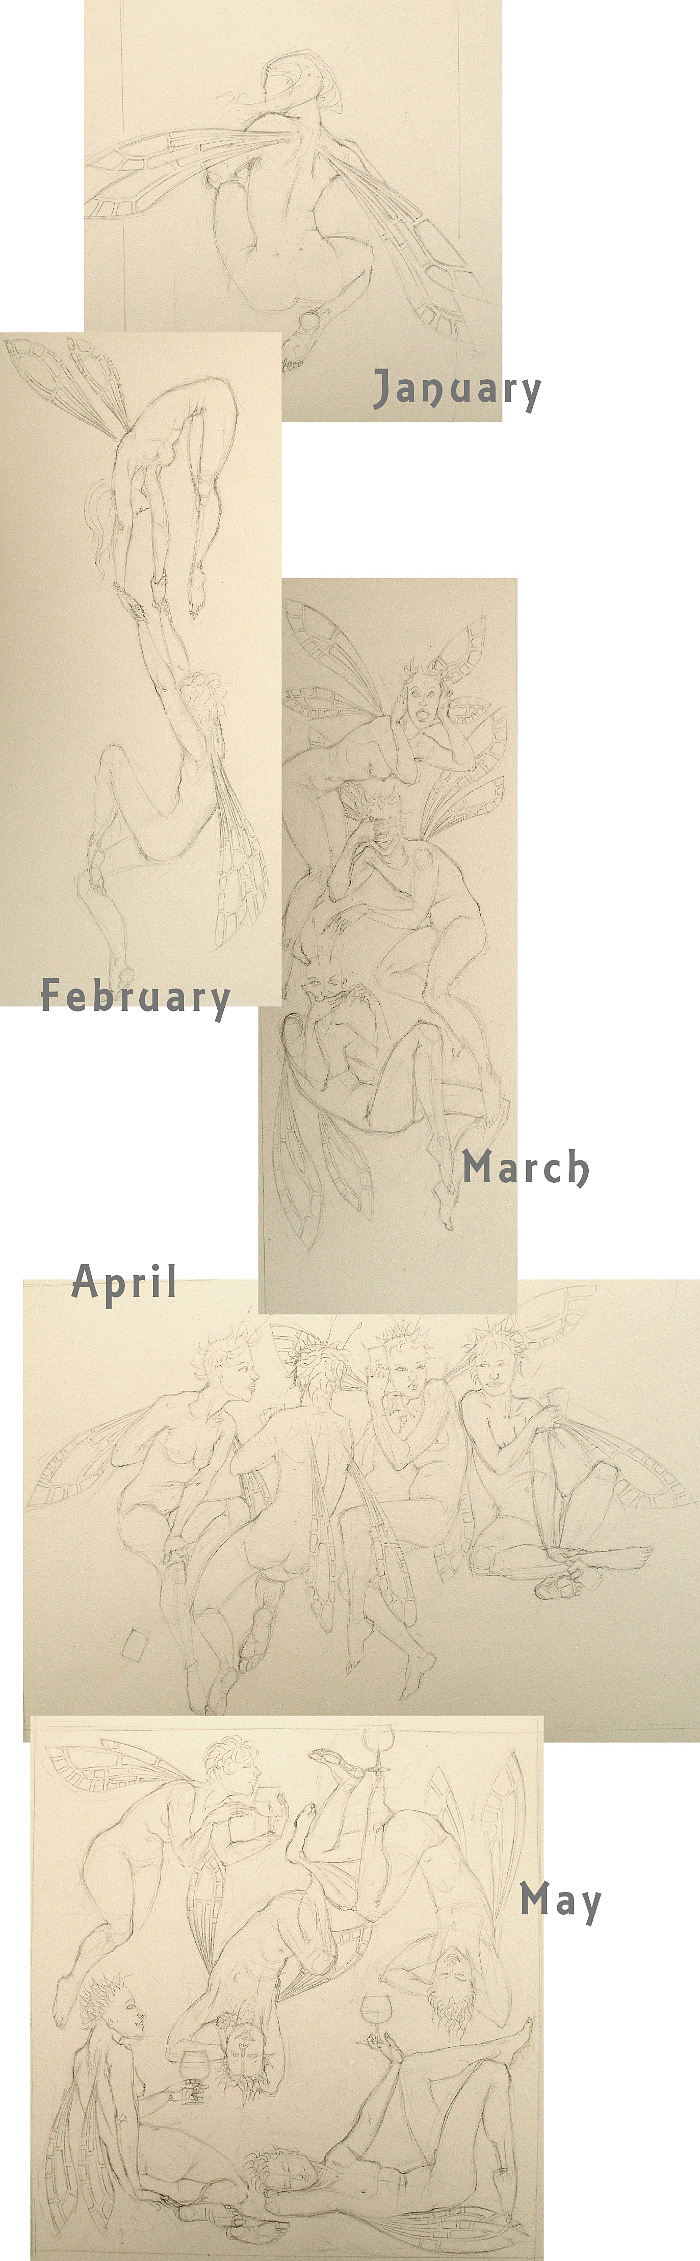 Sketches for the 2012 calendar